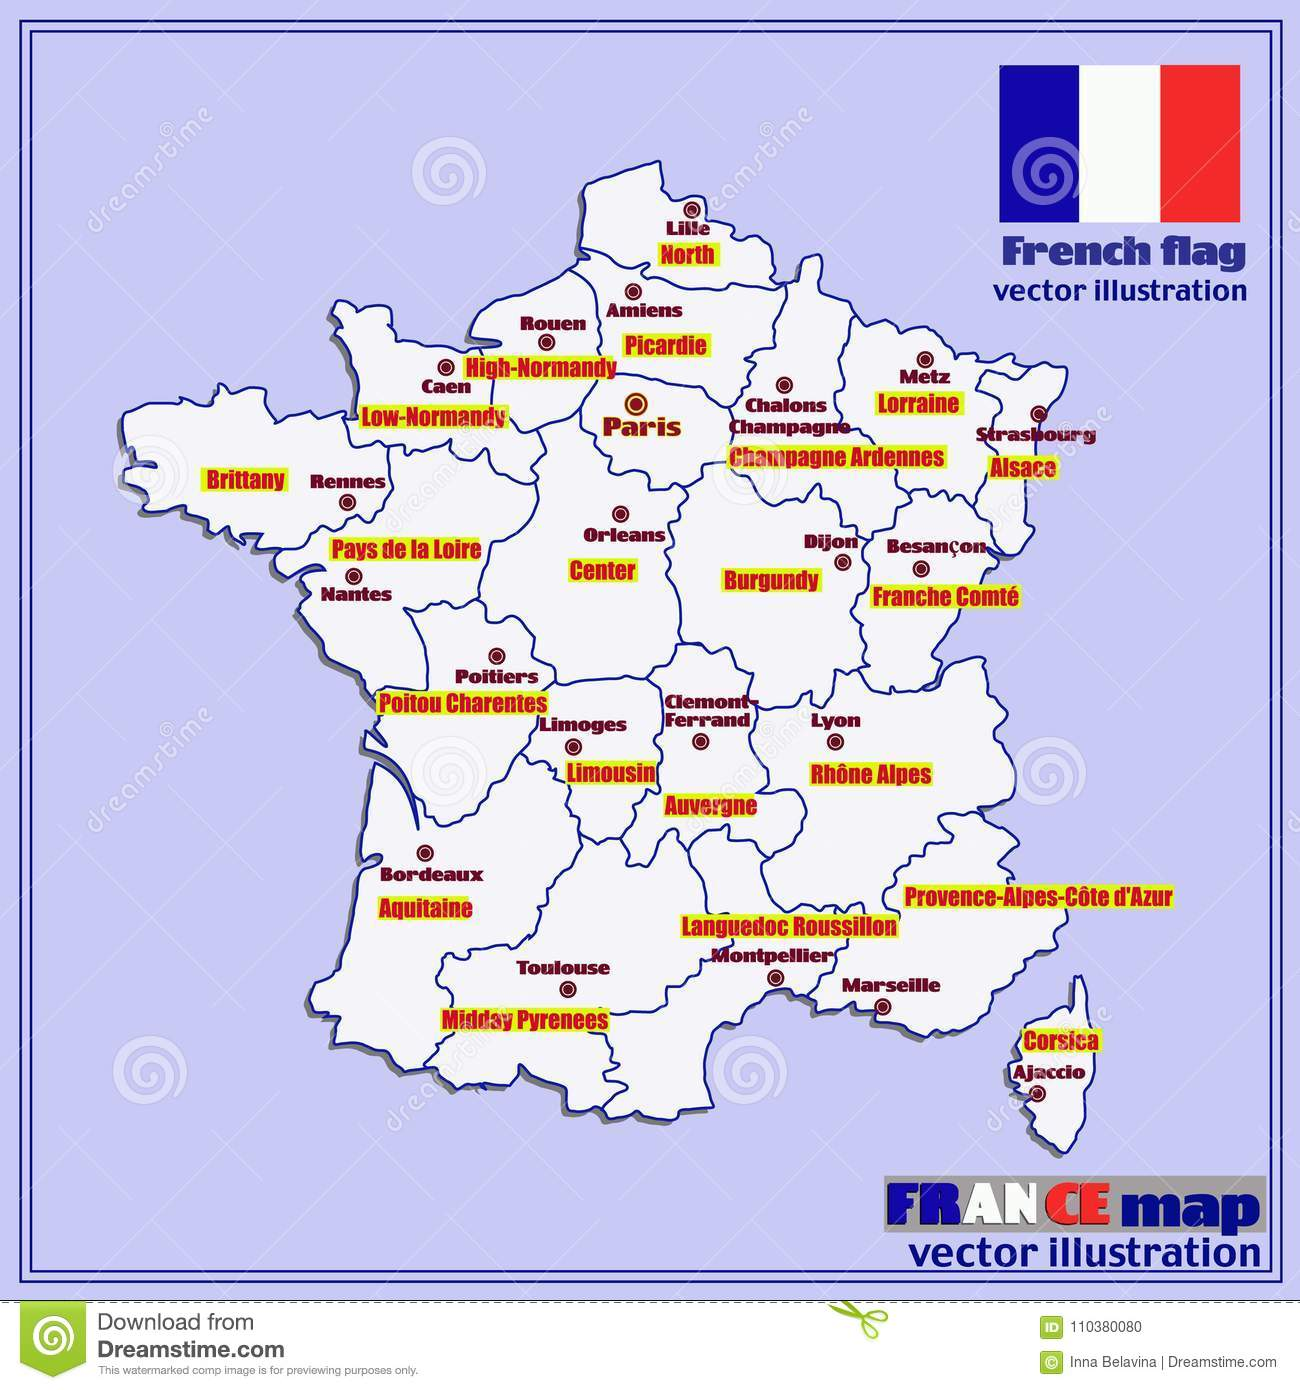 Map Of France With Regions.Map Of France With French Regions Vector Stock Vector